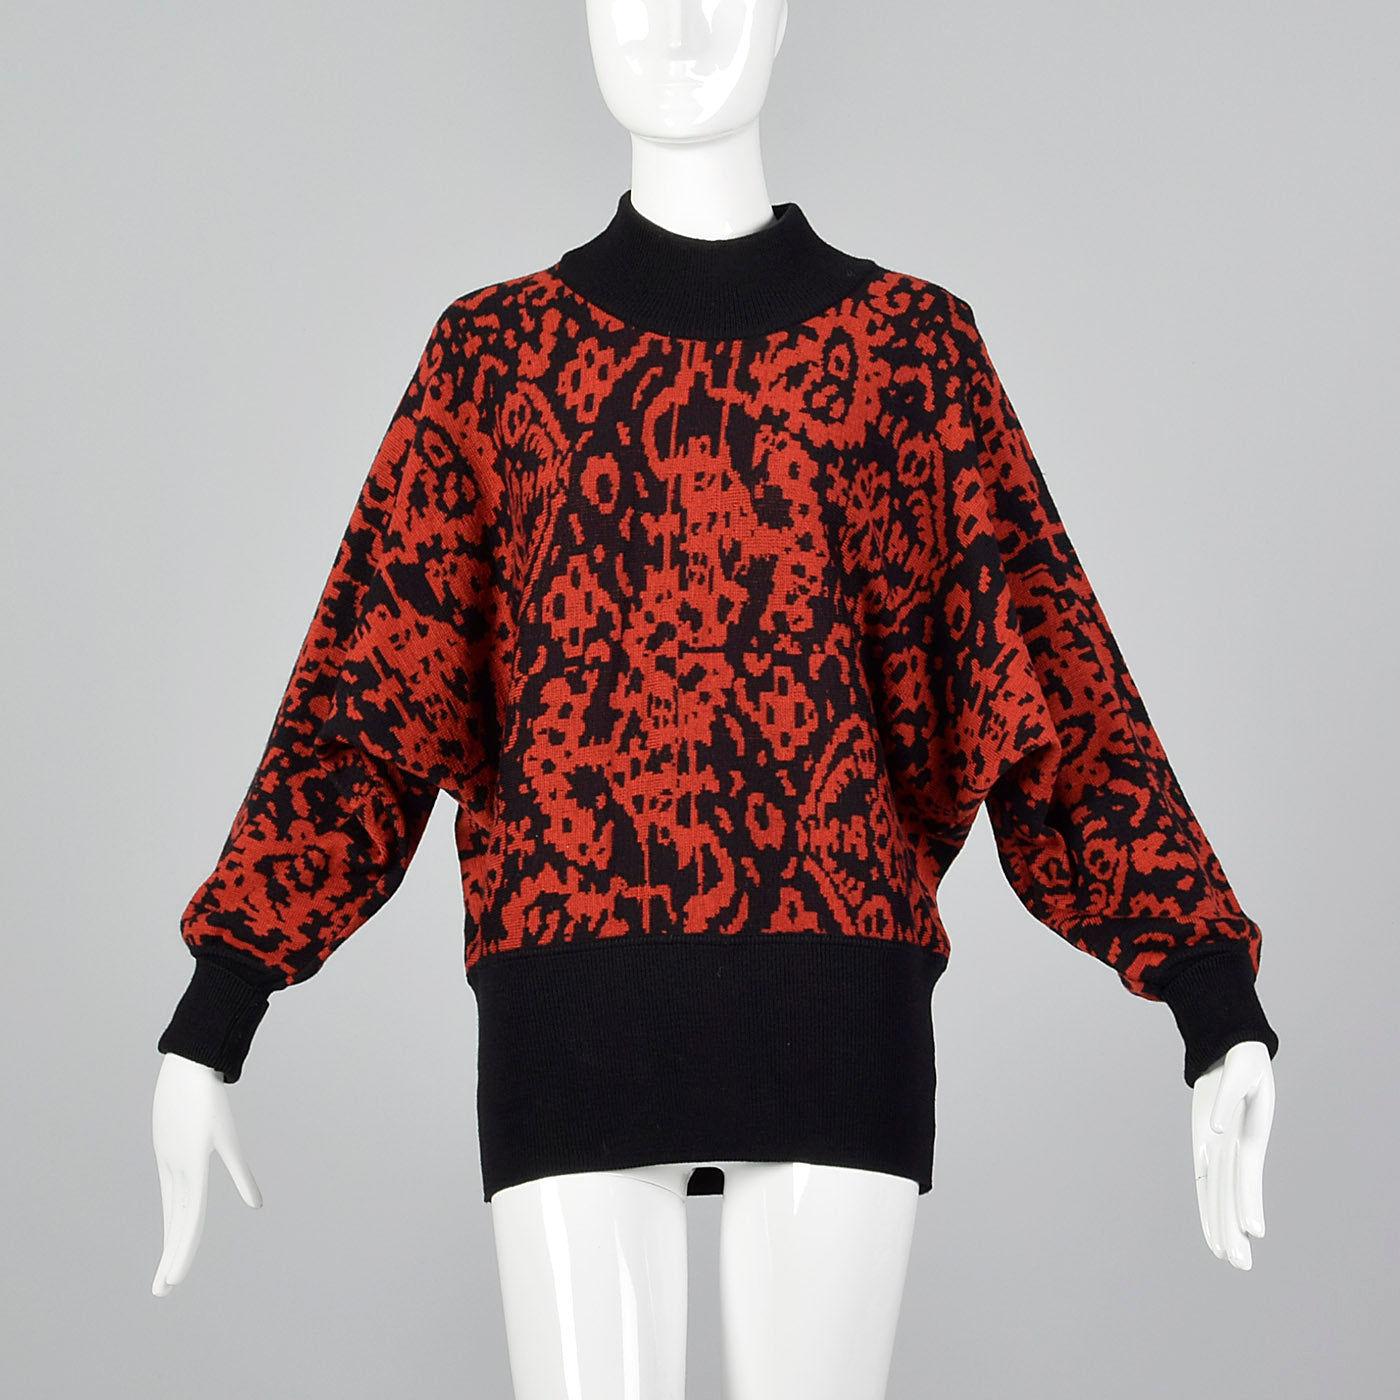 1980s Jaeger Oversized Abstract Sweater In Red Black Style Salvage